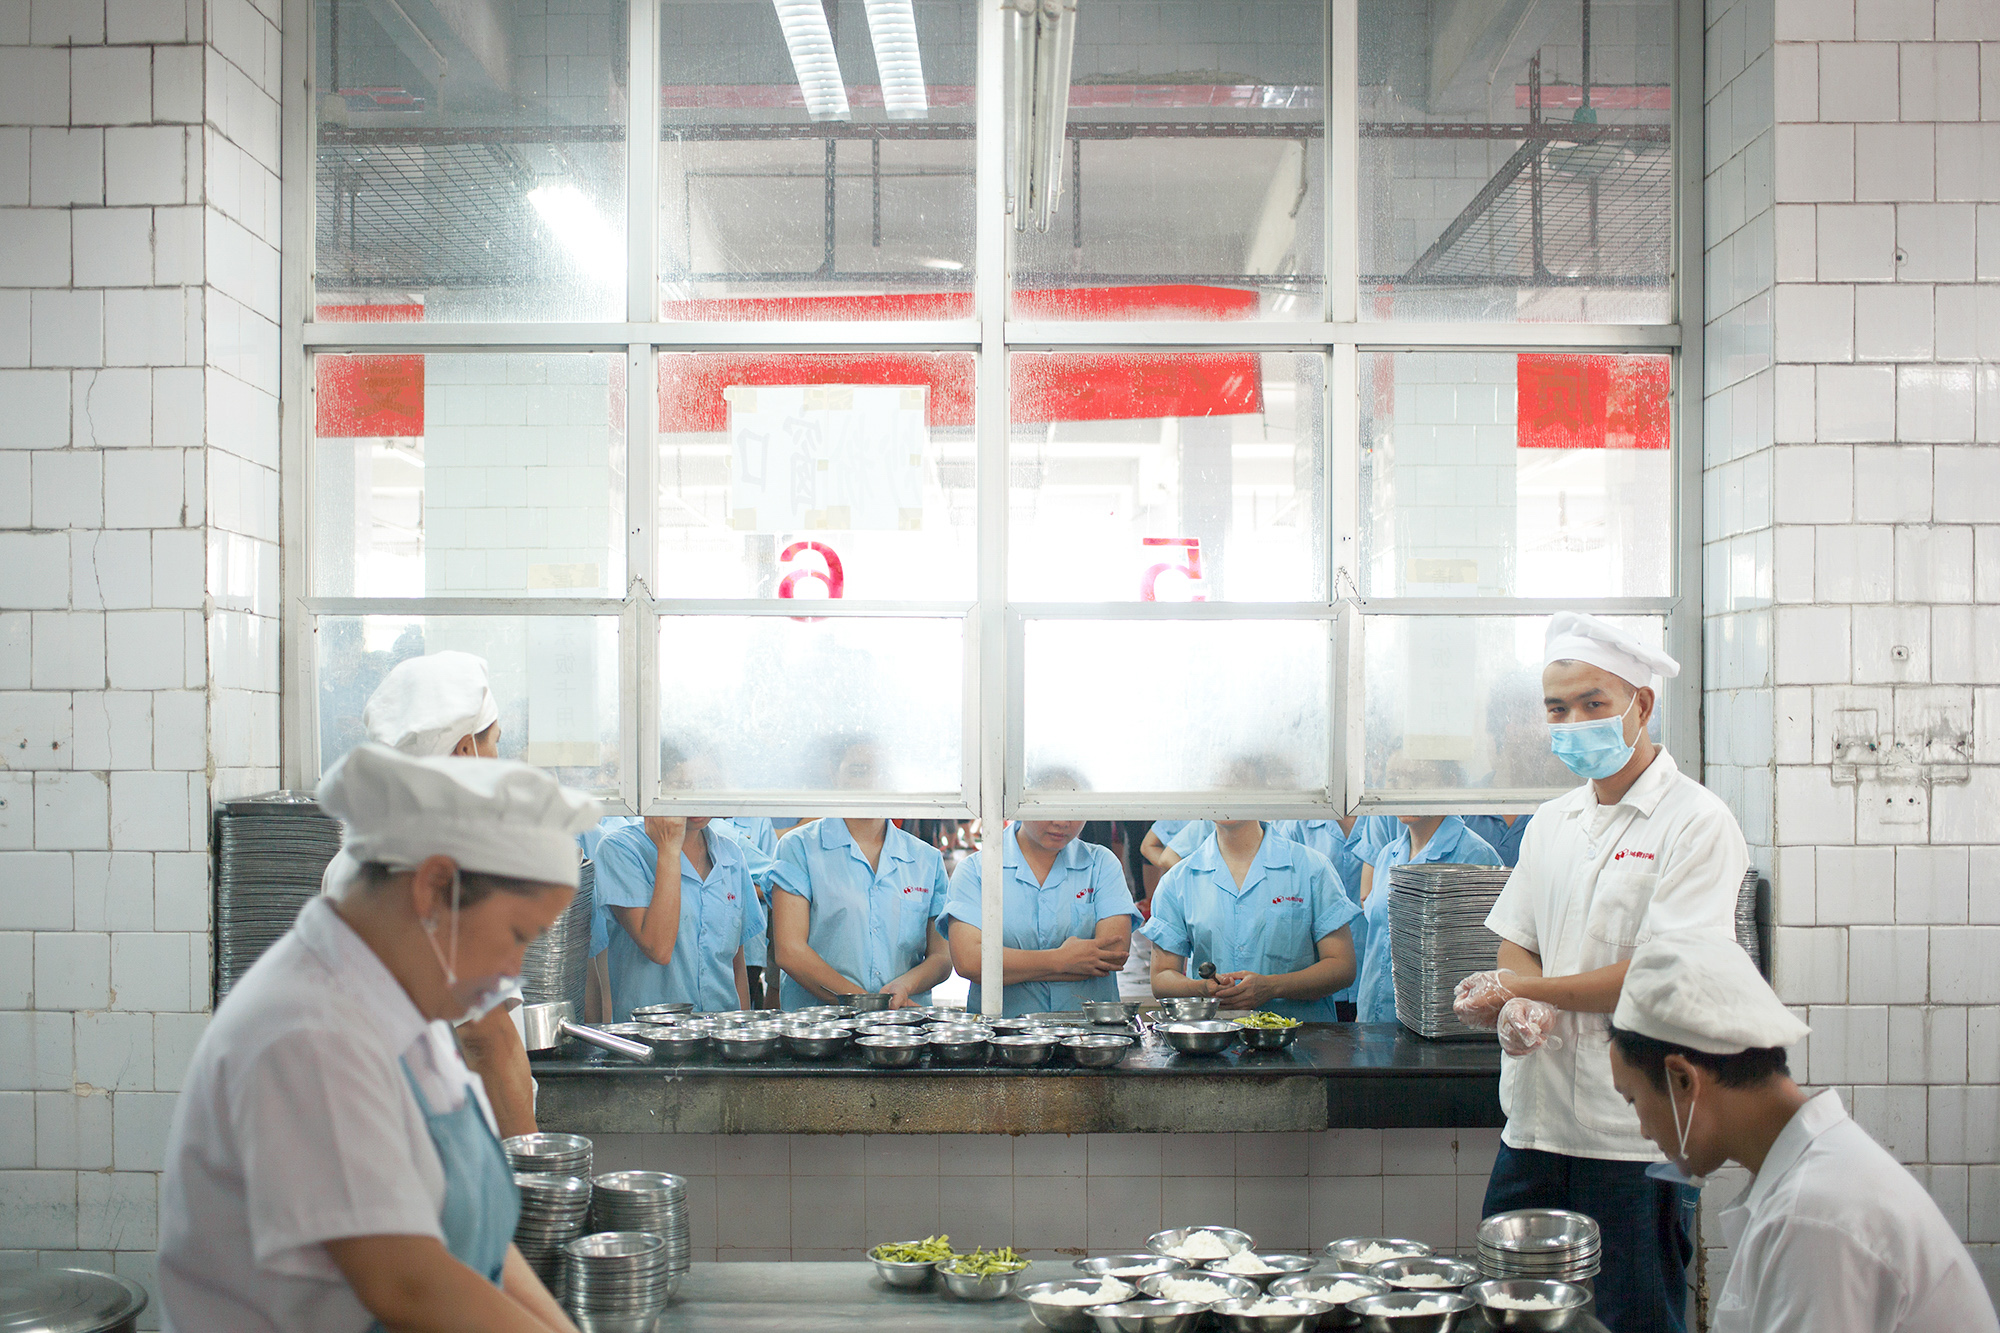 A lunch facility at a printing house for major publishers, including Penguin and Disney, on the outskirts of Shenzhen, China, 2016.